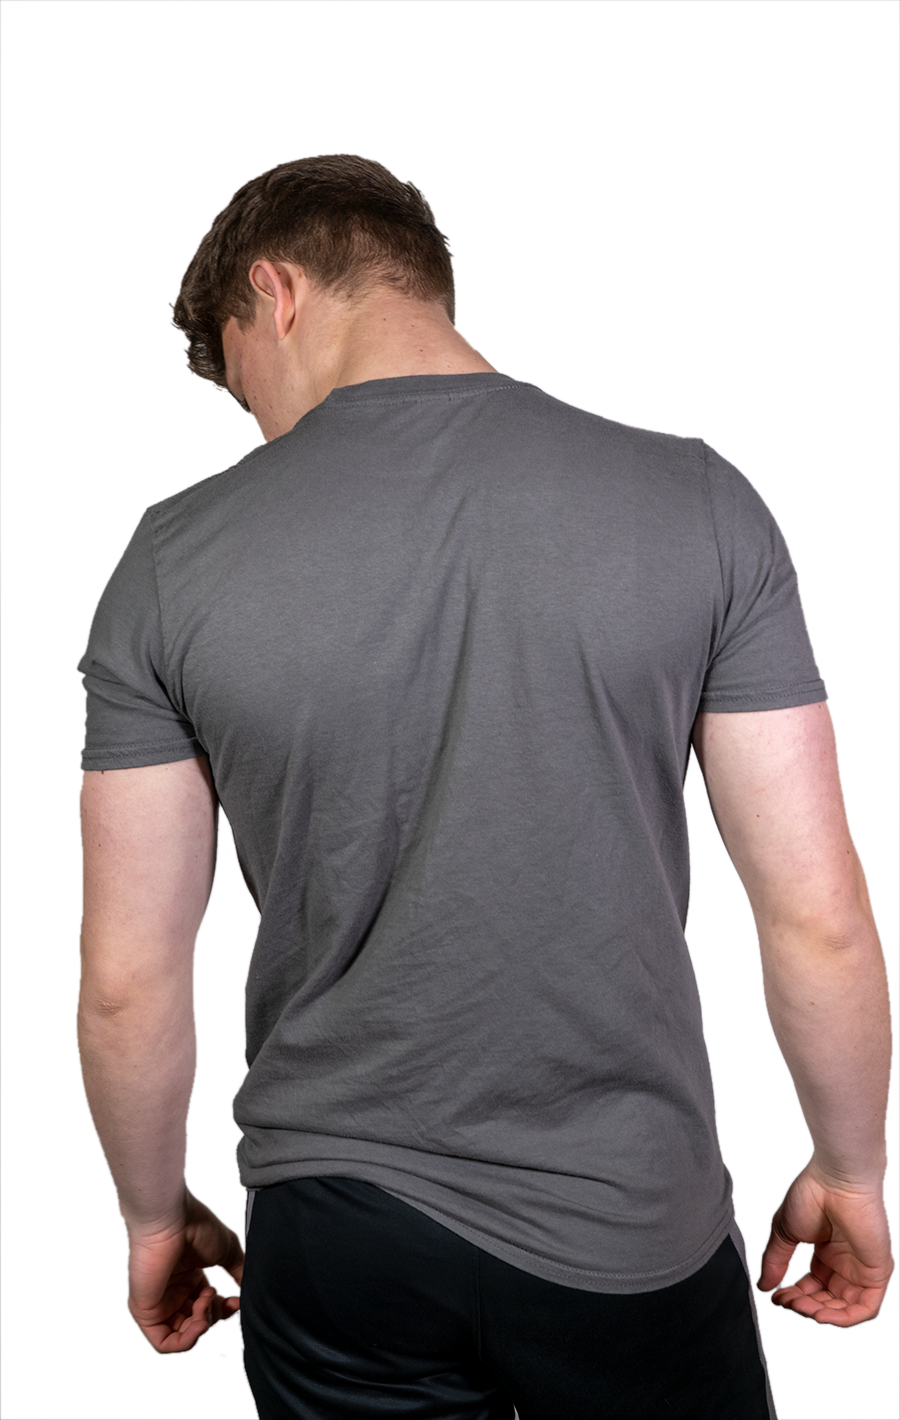 Short Sleeve Grey T Shirt with Black Evolve